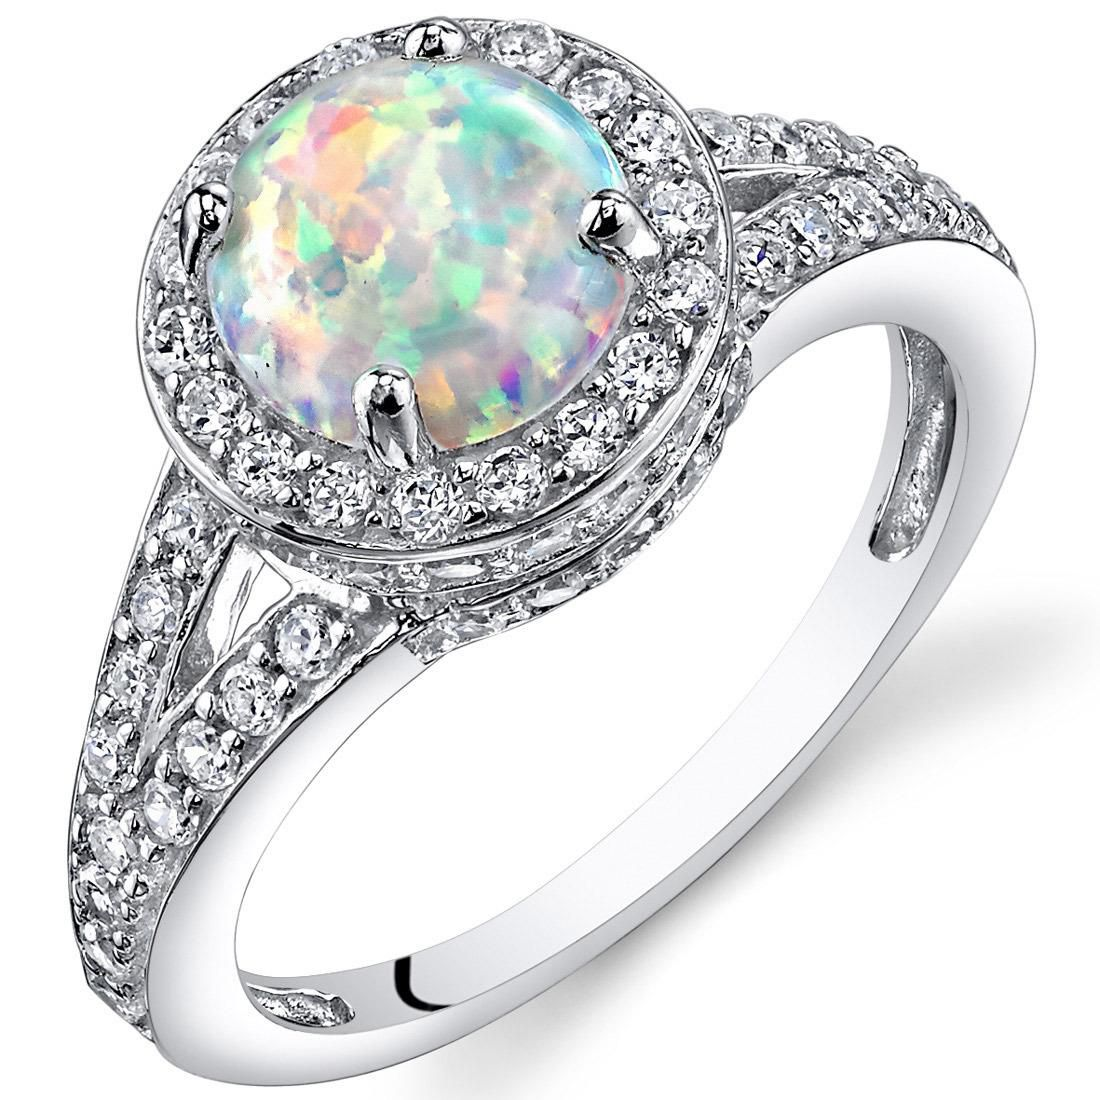 Opal Halo Ring Sterling Silver 1.25 Cts Sizes 5 to 9 SR11168 Size 5